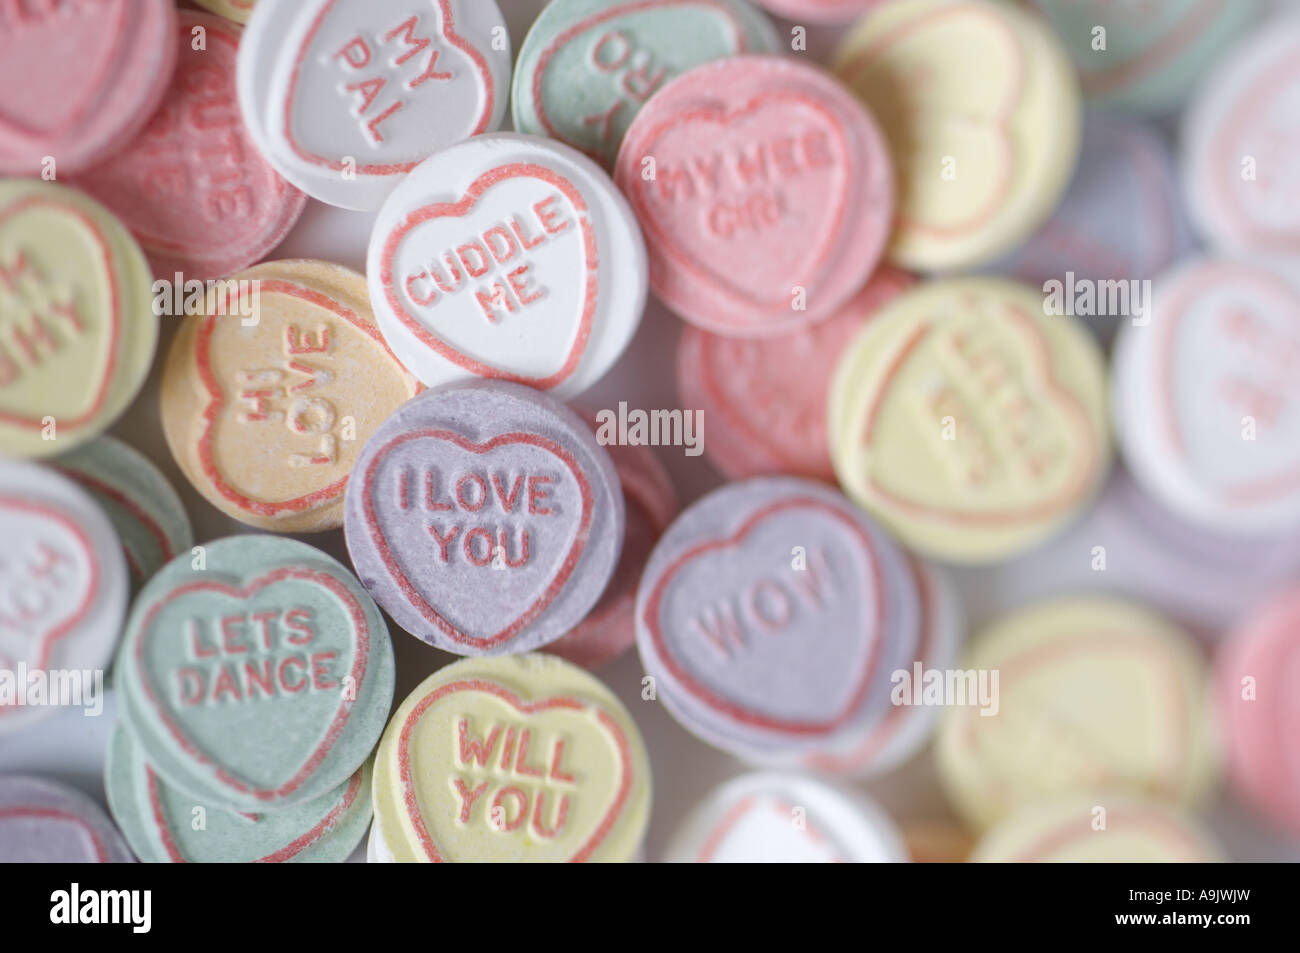 Love Hearts. I Love You, Valentines. Romance. Sweets